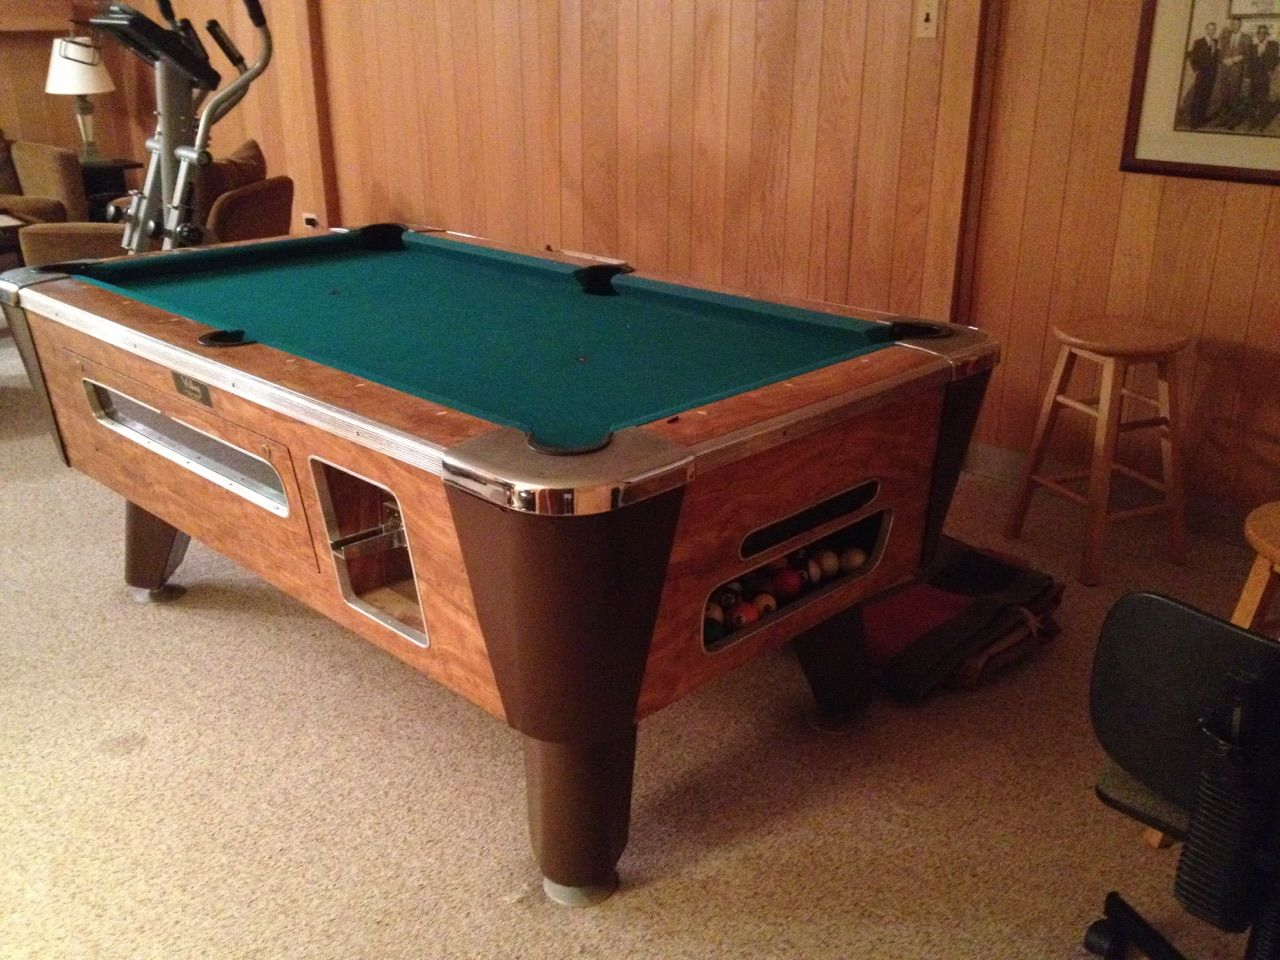 Valley Bar Box Pool Table Sold Sold Used Pool Tables Billiard - Valley bar pool table for sale